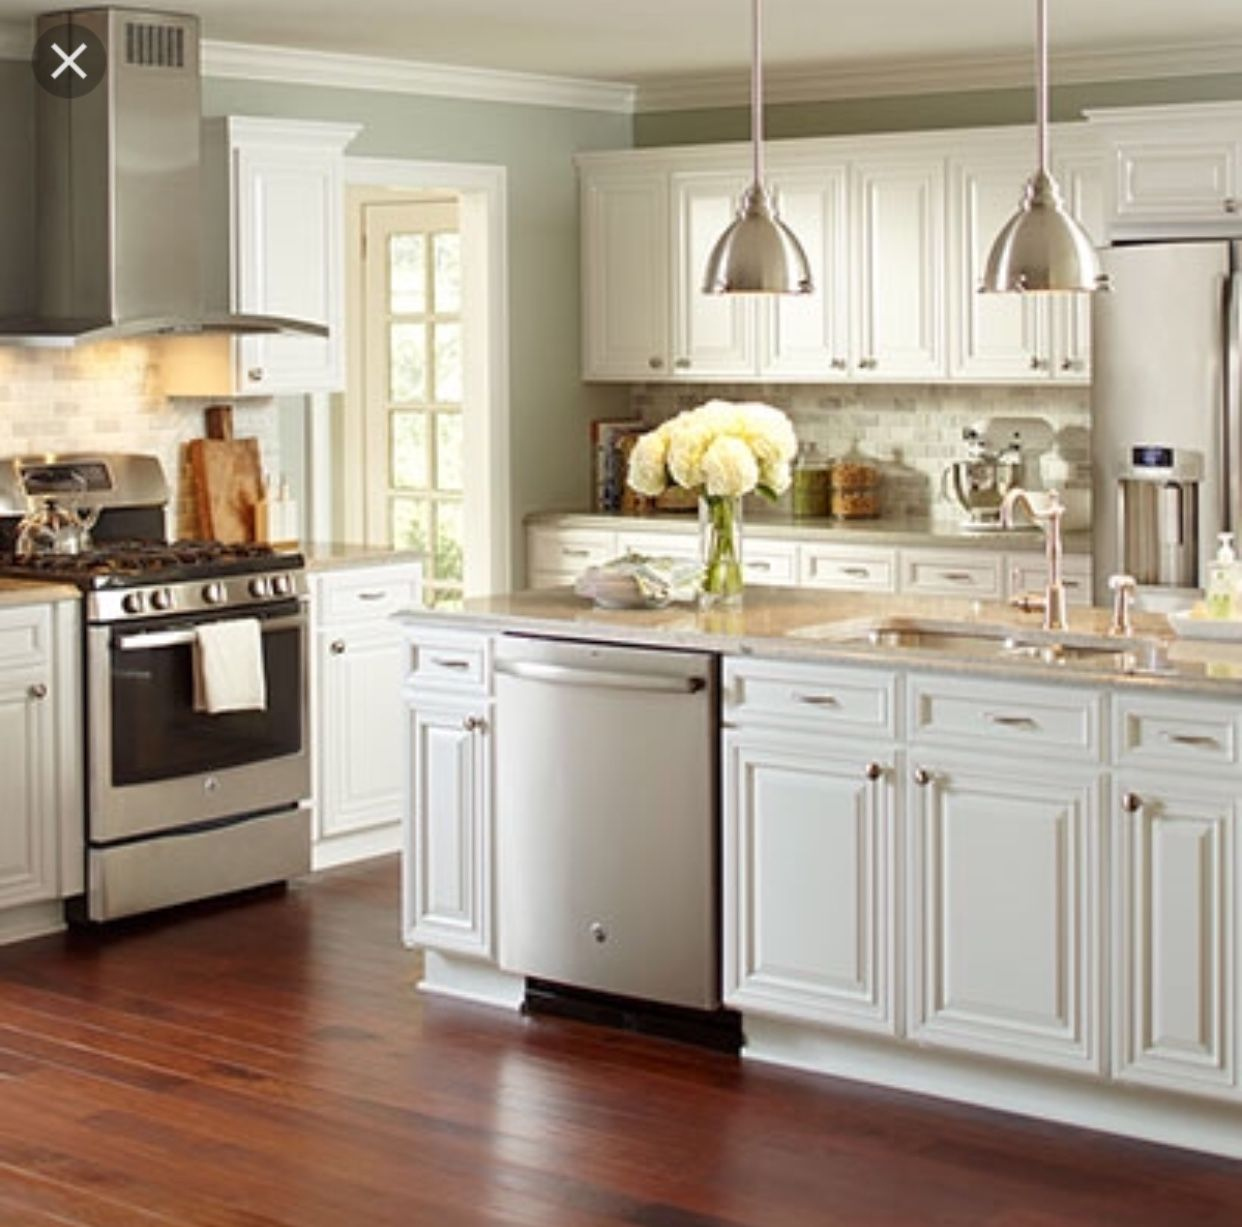 Pin By Andrea Andres On House Home Depot Kitchen Kitchen Cabinets Home Depot Kitchen Design Small